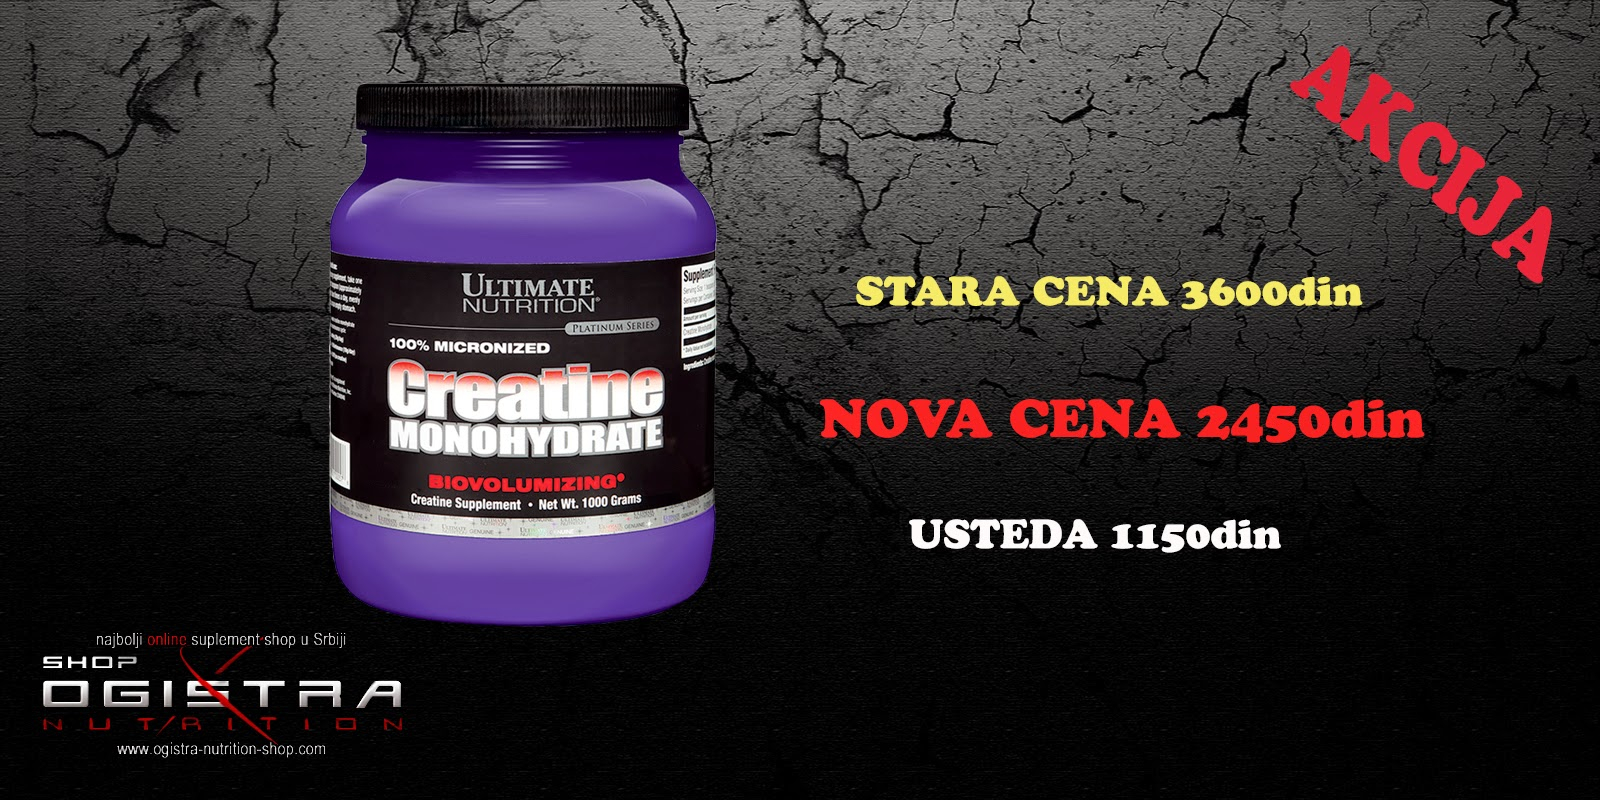 http://www.ogistra-nutrition-shop.com/index.php